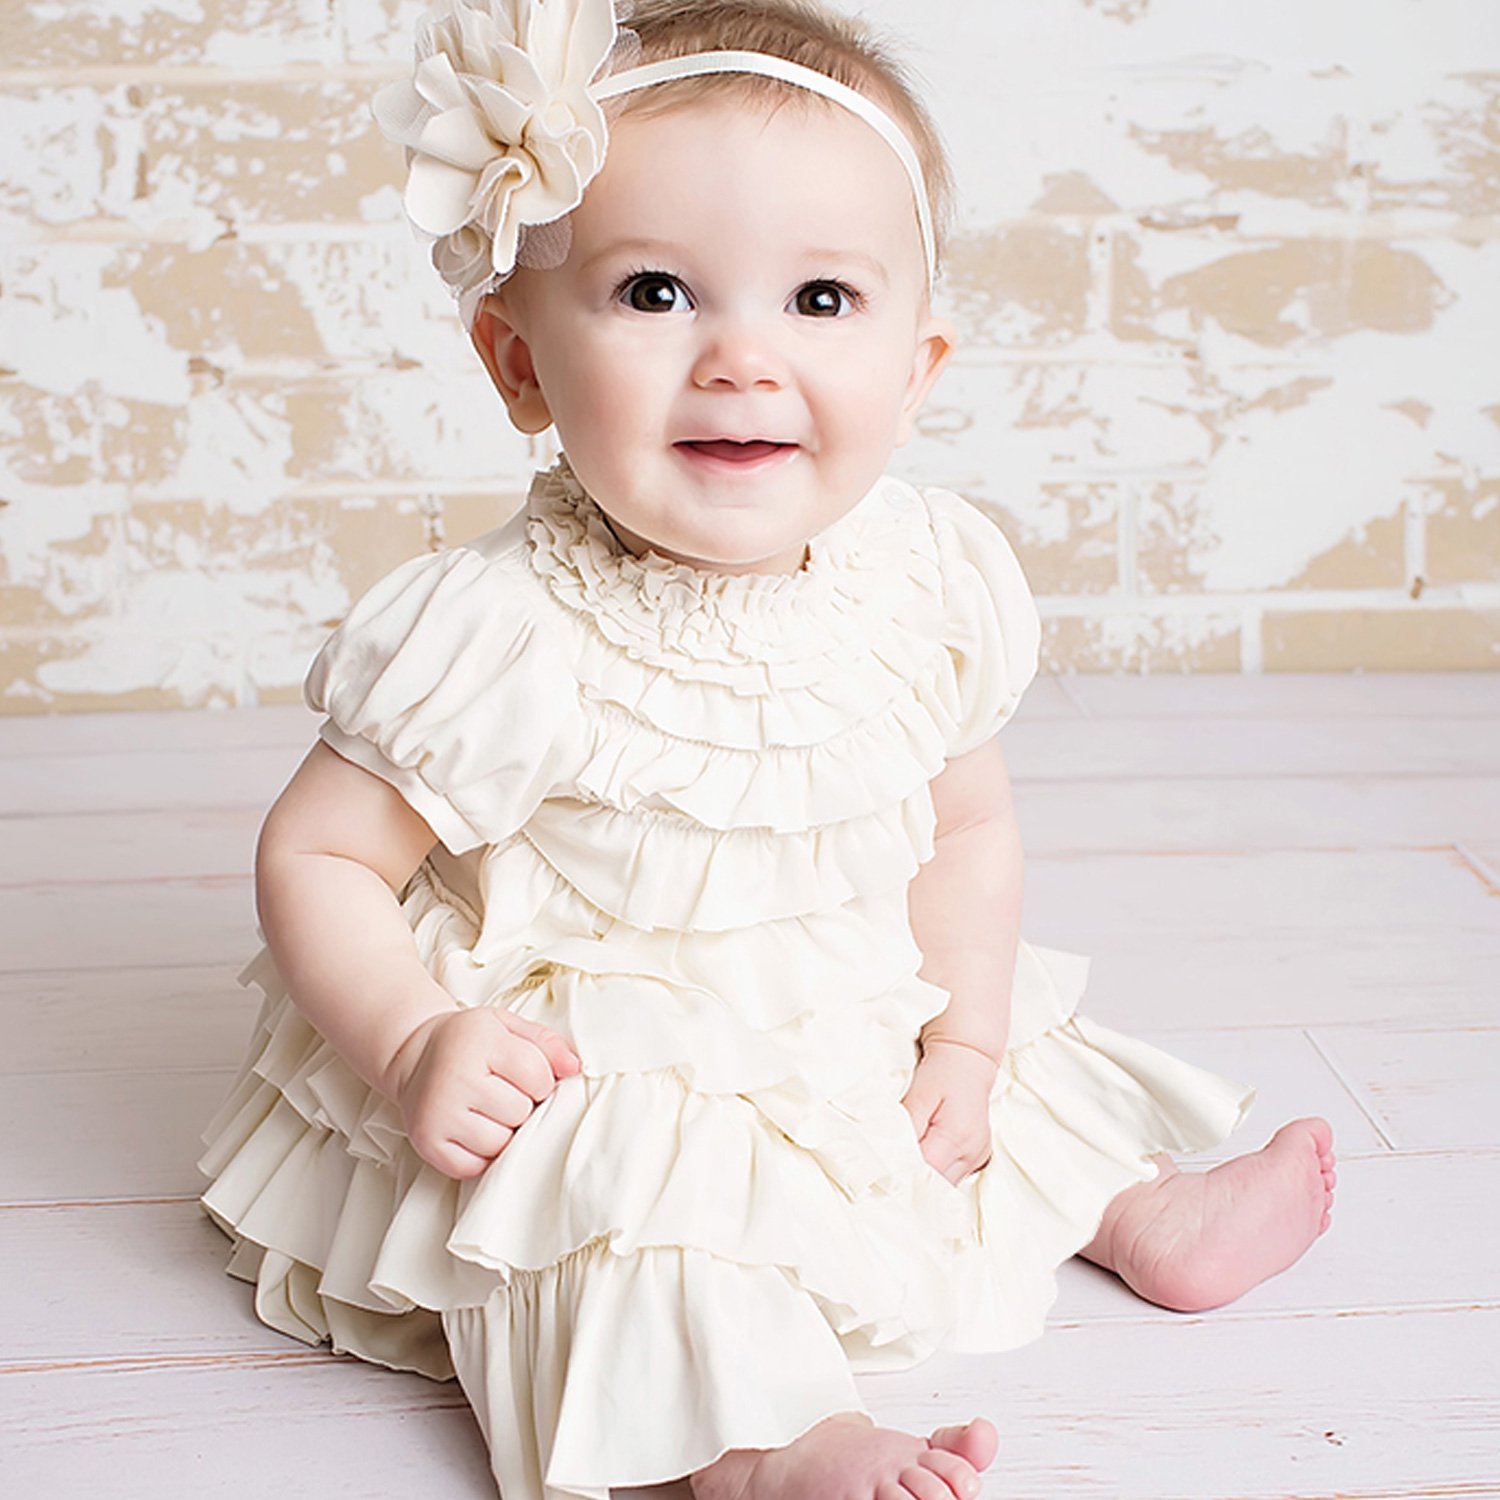 Baby Girl Christmas Dress in Eggnog | Baby Bling Street Baby Fashion Boutique